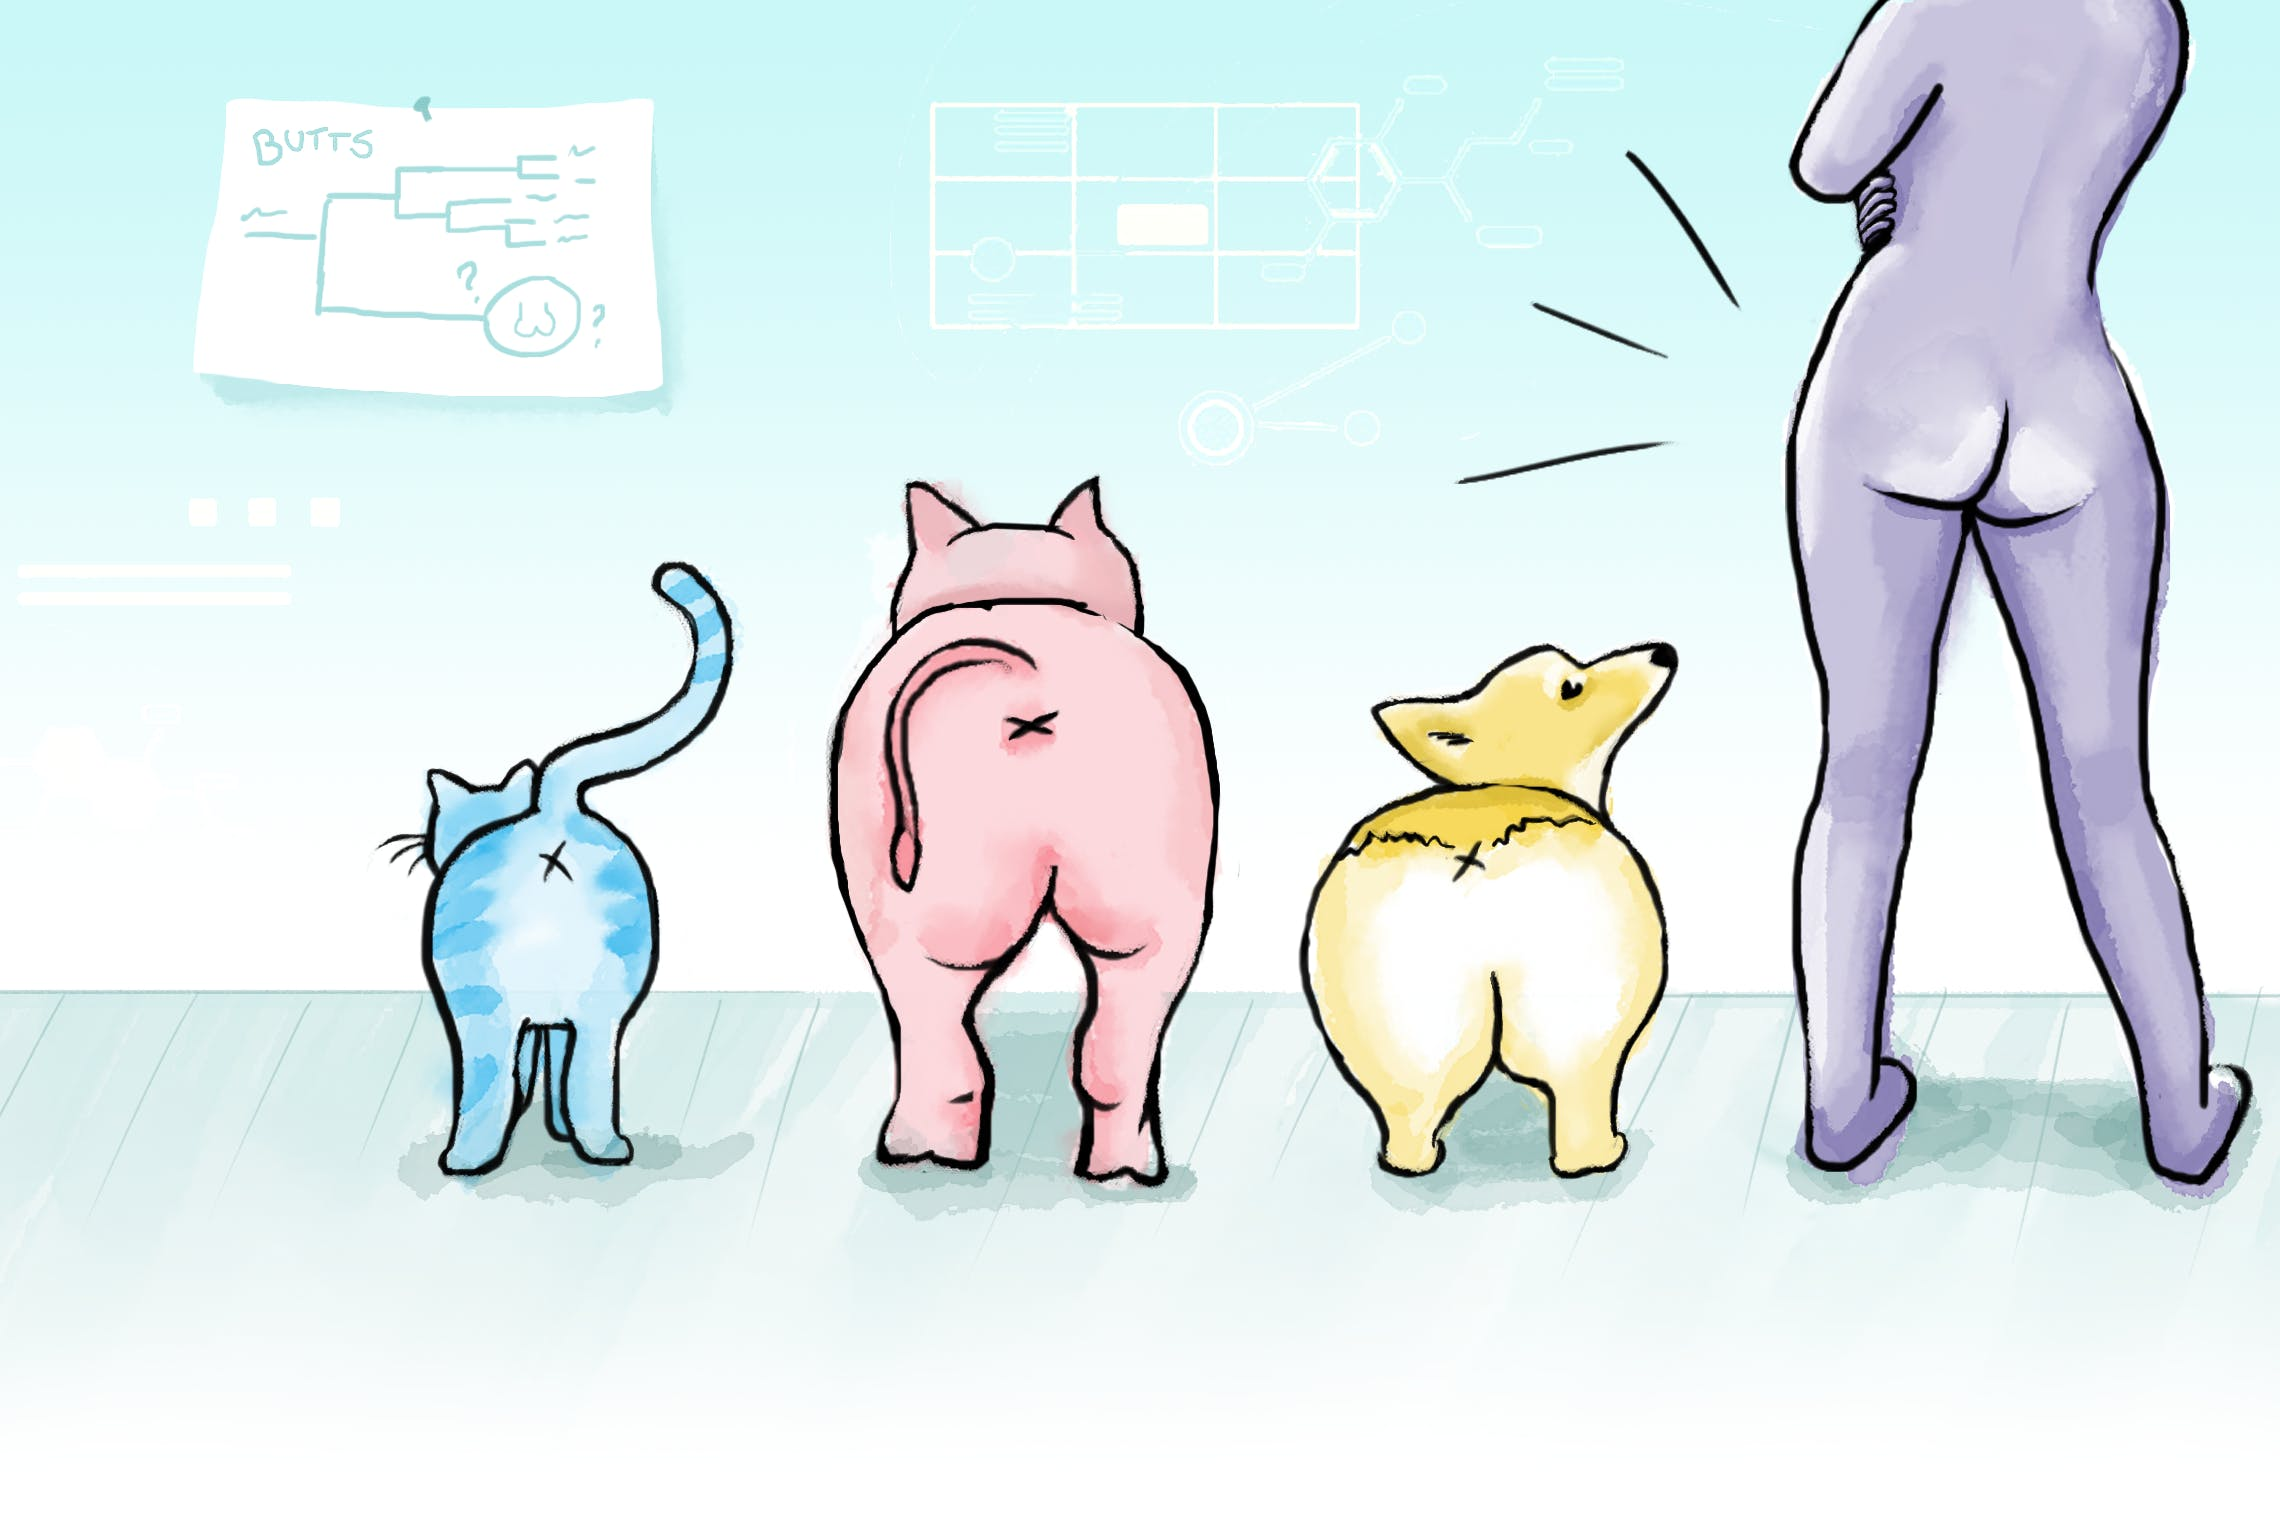 A cat, pig, dog, and human seen from the back, so their butts are most visible